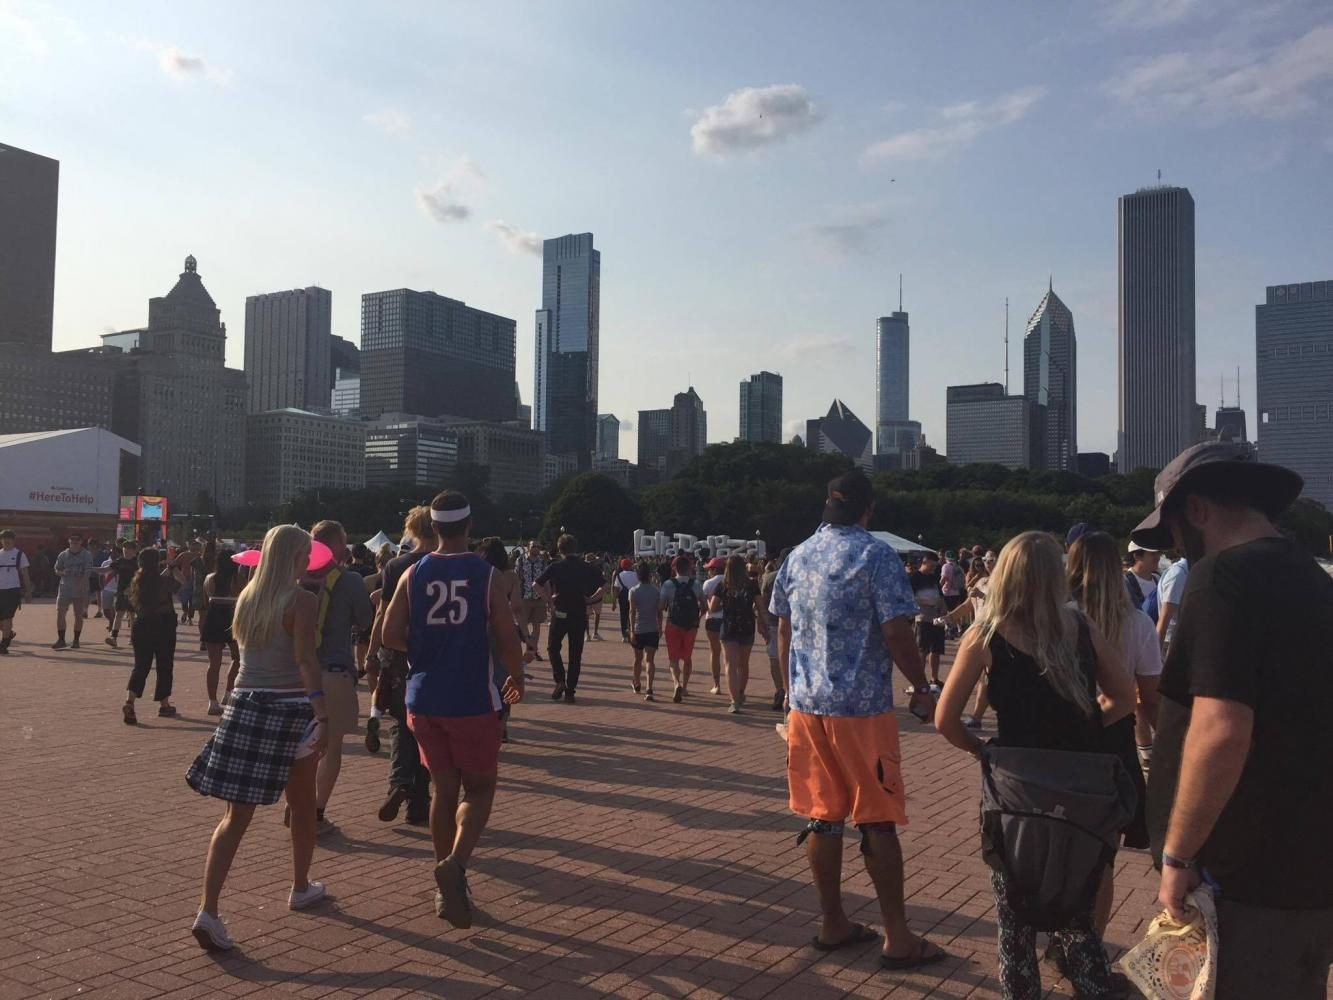 City skyline at Lollapalooza.